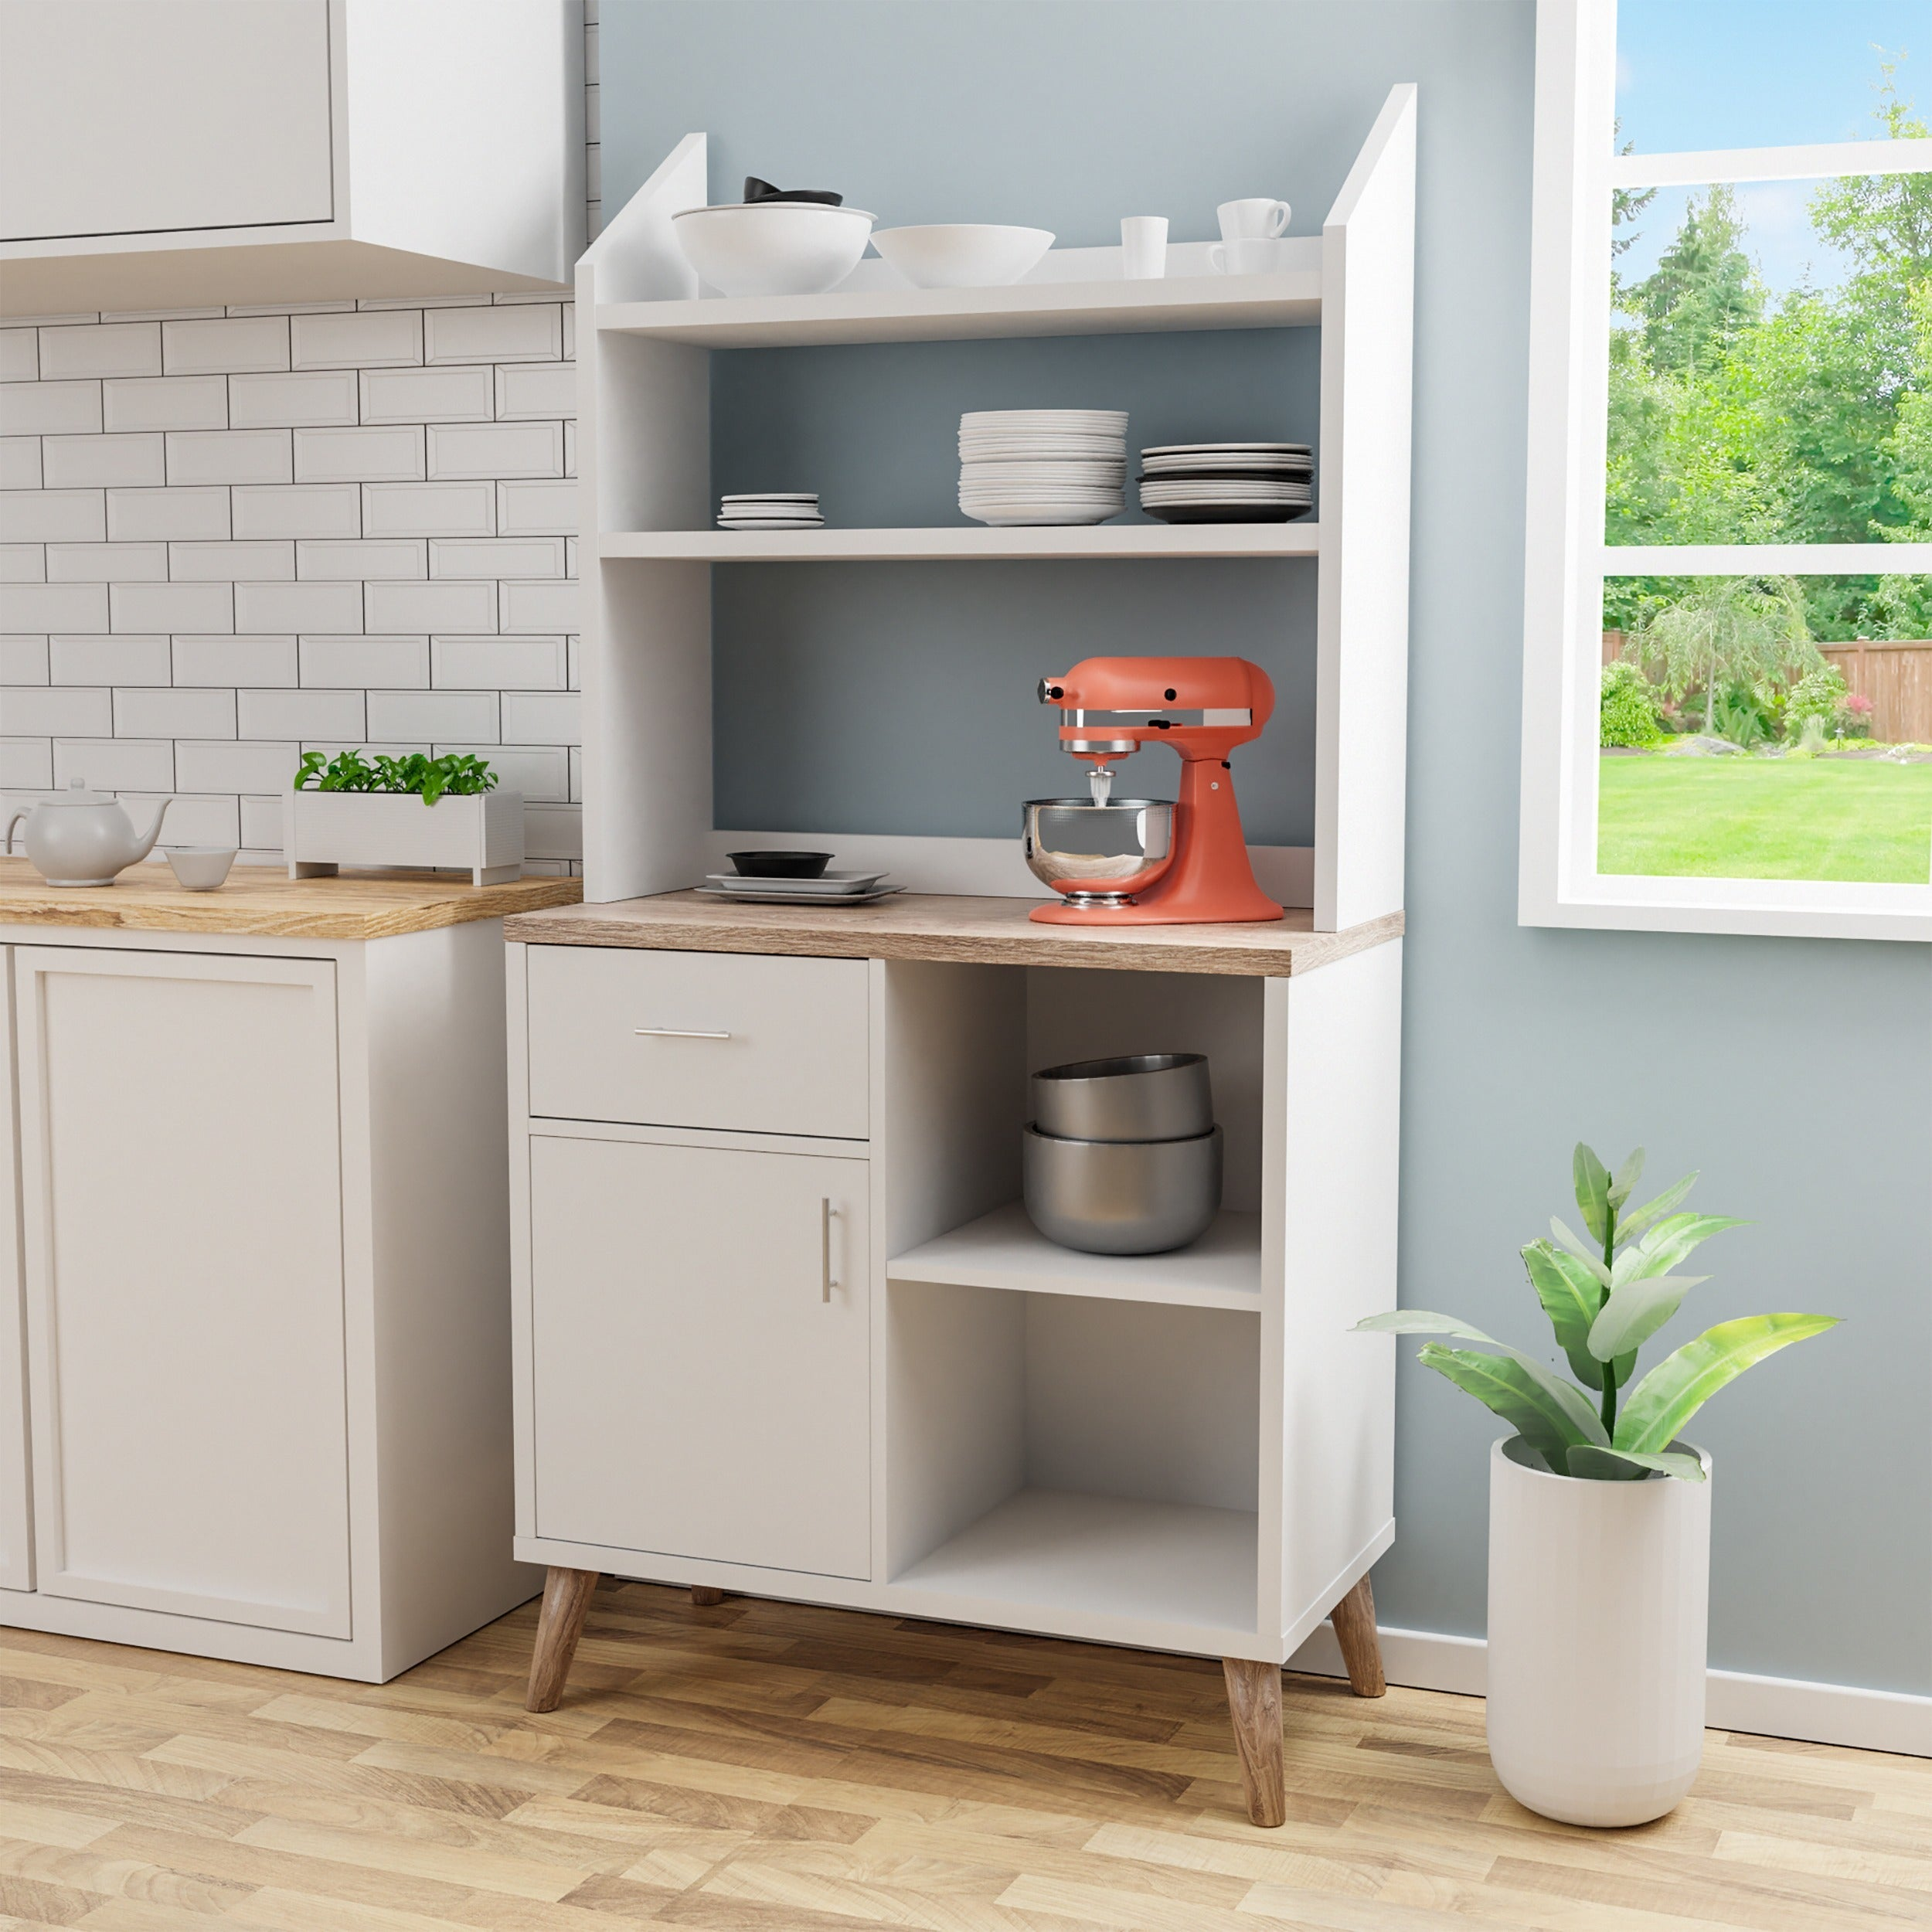 Details About Kitchen Storage Cabinet White Pantry Two Tone Shelving Drawer Organizer Display